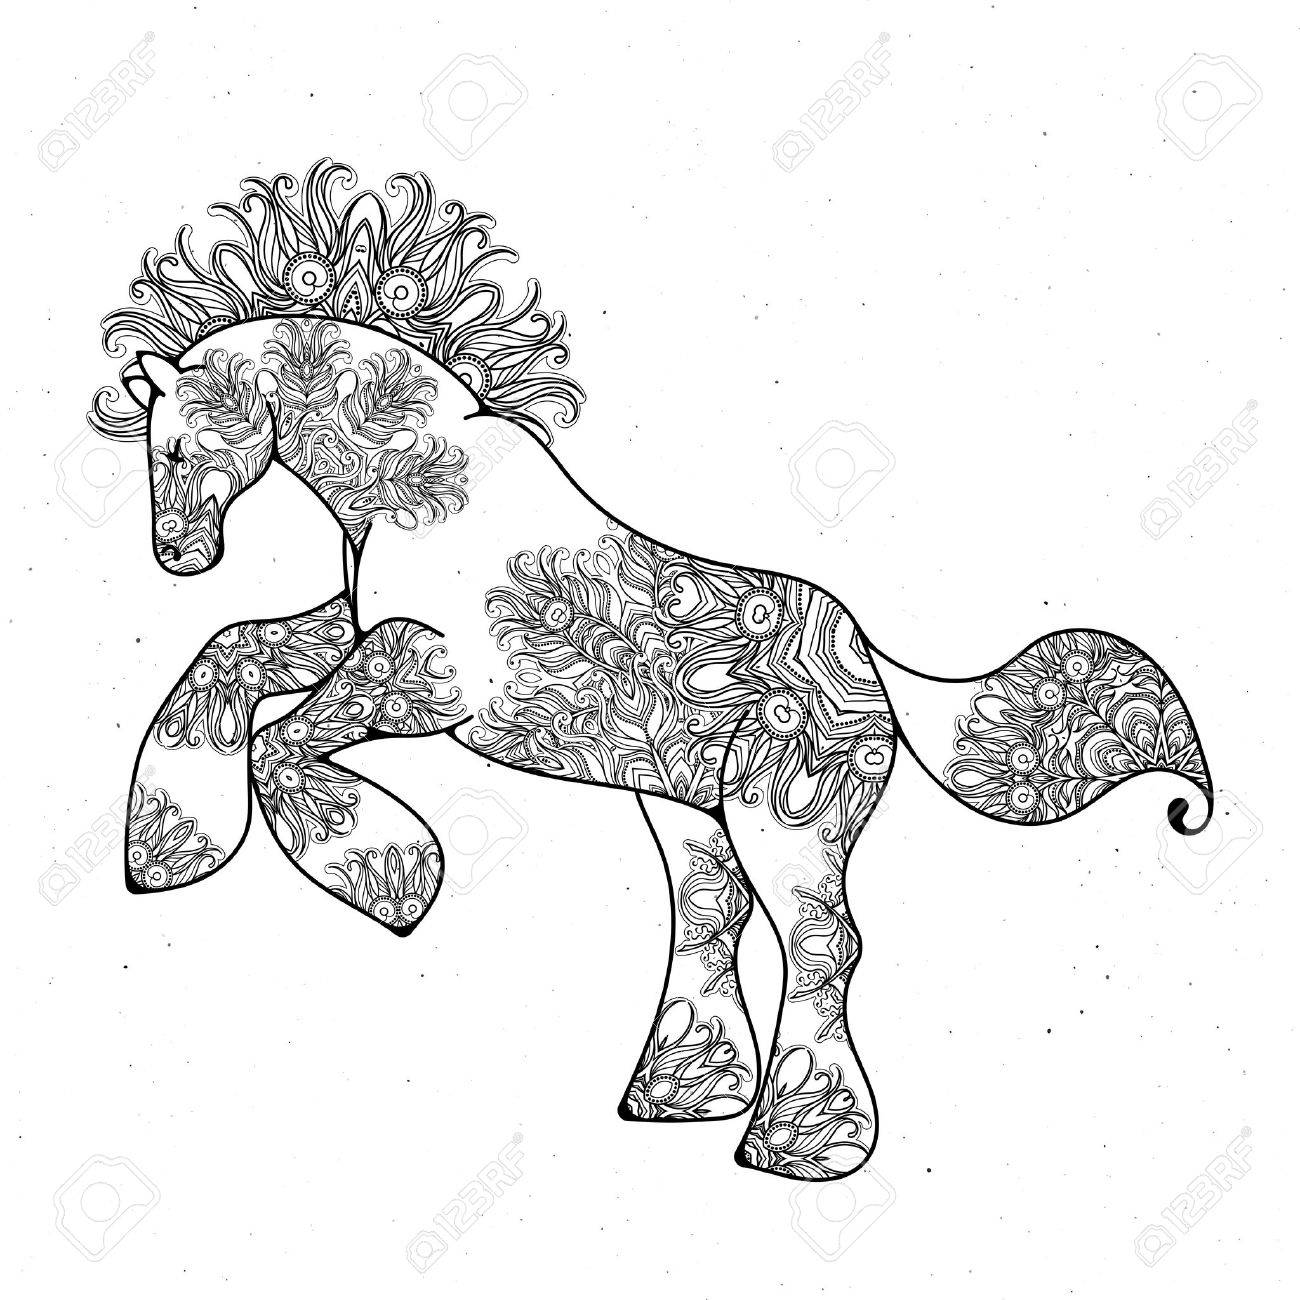 Coloriage Cheval Pur Sang.Antistress Lineaire Page Avec Cheval Zentangle Animal Pour Cahier